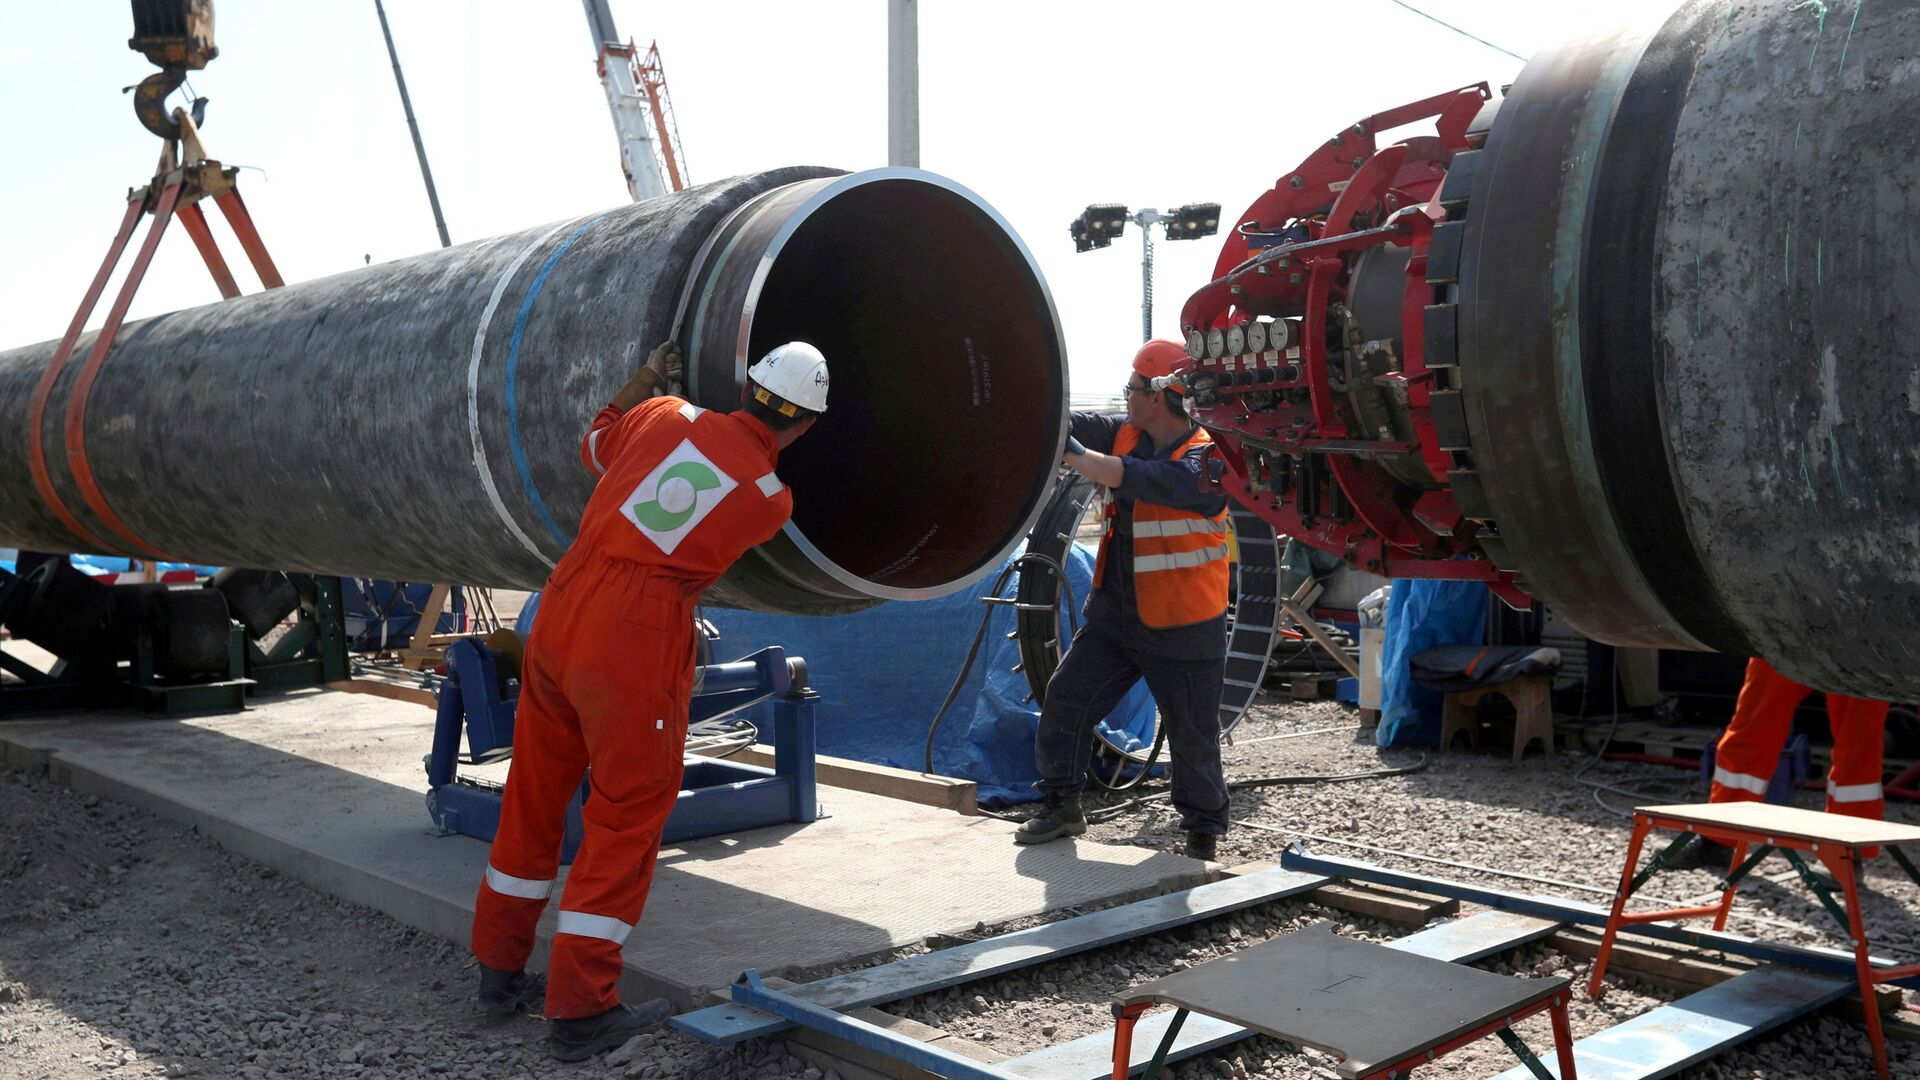 FILE PHOTO: Workers are seen at theconstruction siteof the NordStream2 gas pipeline, near the town of Kingisepp, Leningrad region, Russia, June 5, 2019 - Sputnik International, 1920, 29.07.2021